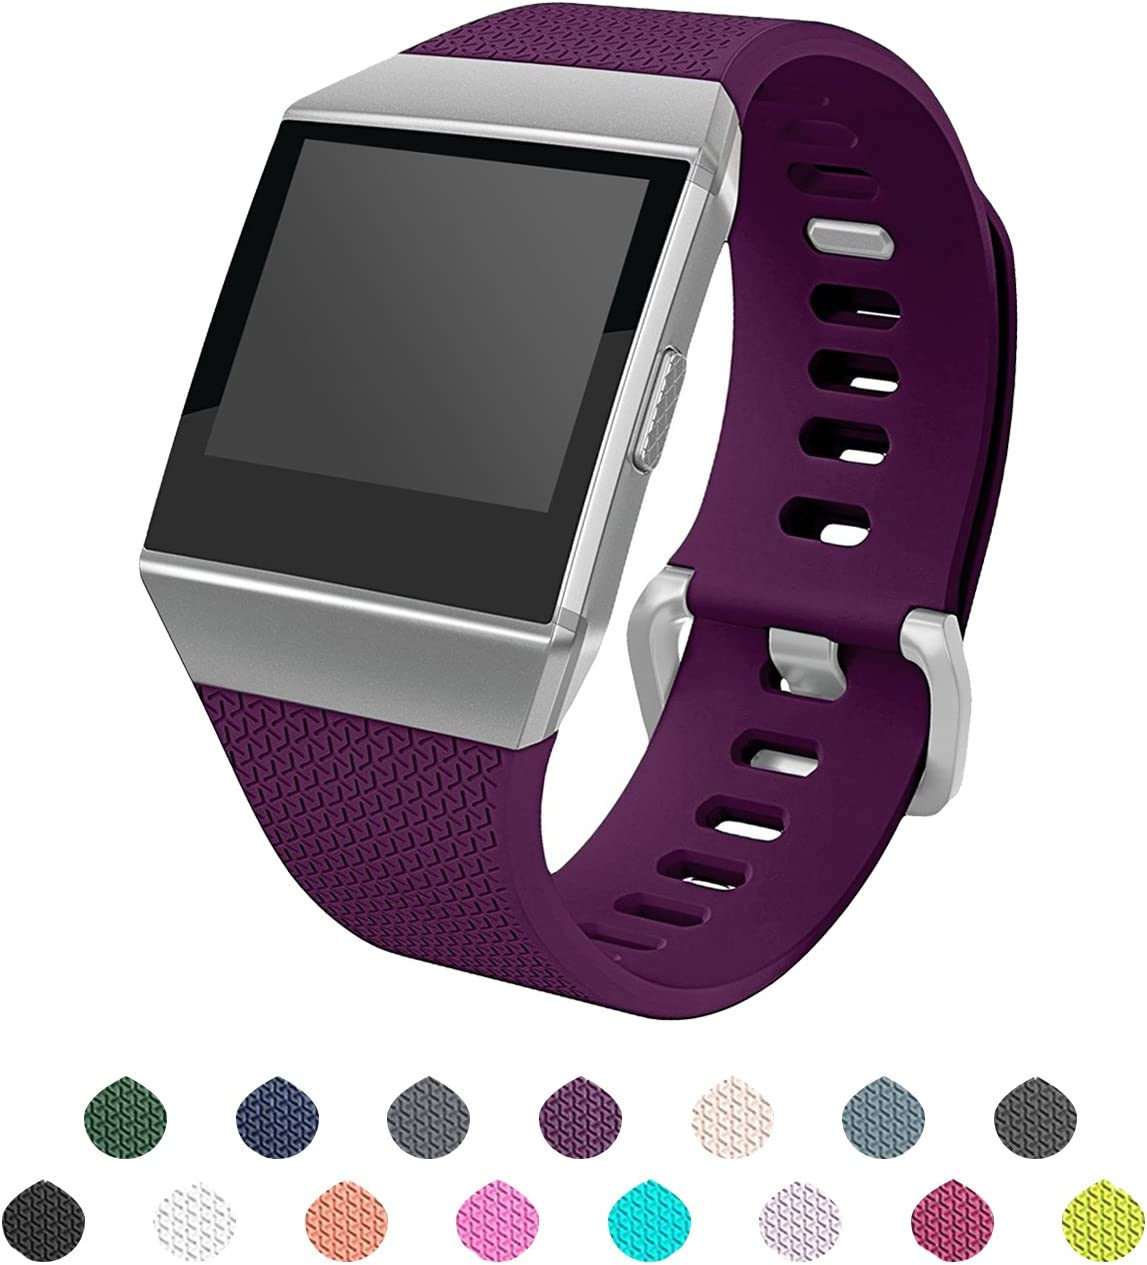 ULT-unite Fitbit Ionic Bands, 15 Colors Replacement Classic Sport Wristbands for Fitbit Ionic Smart Watch.